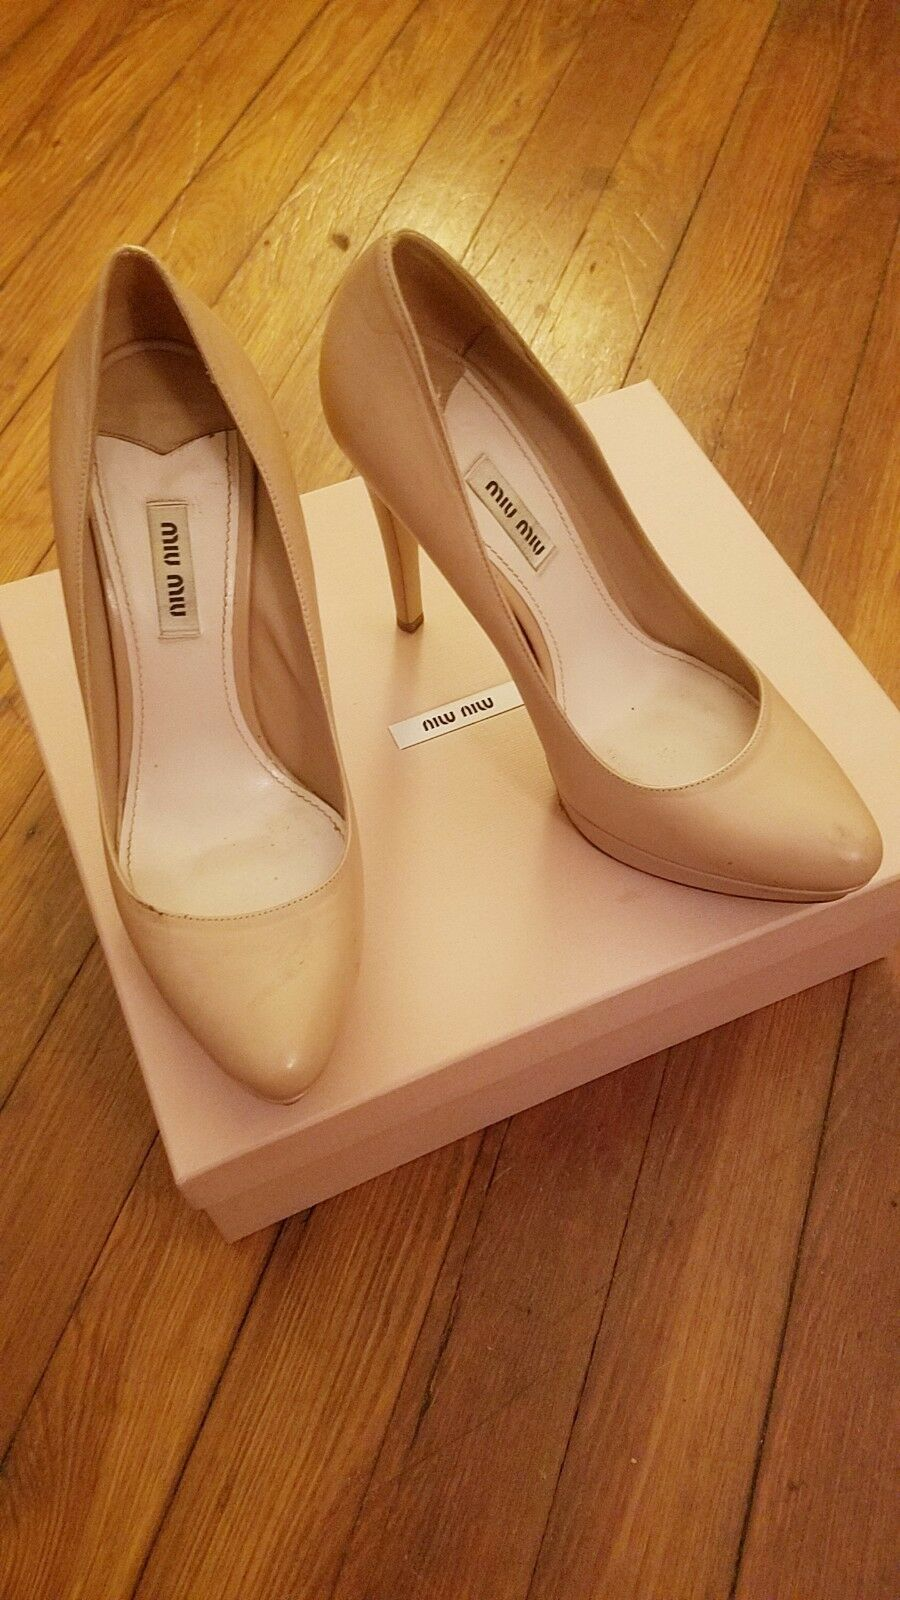 MIU MIU NUDE LEATHER LIGHT Rosa LEATHER NUDE PUMPS, 39 39599a